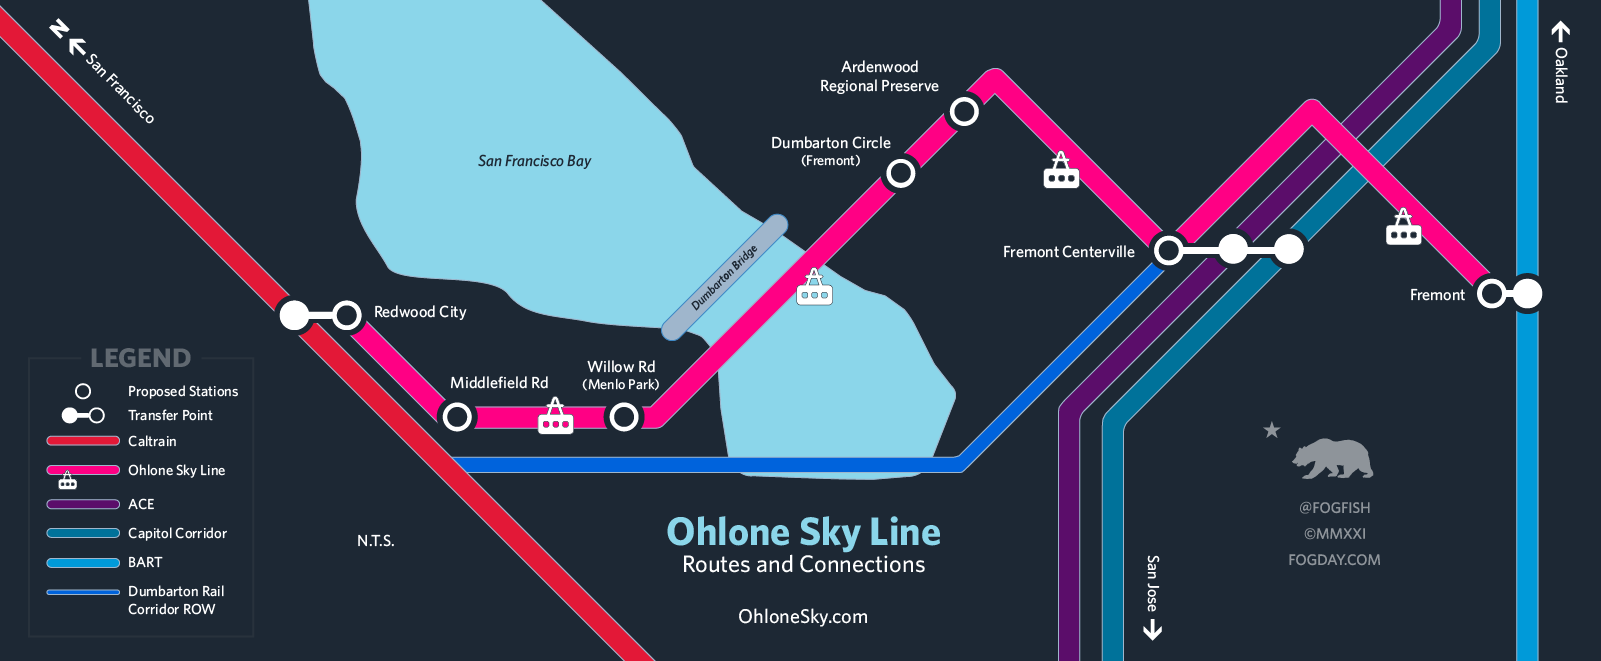 Ohlone Sky Routes